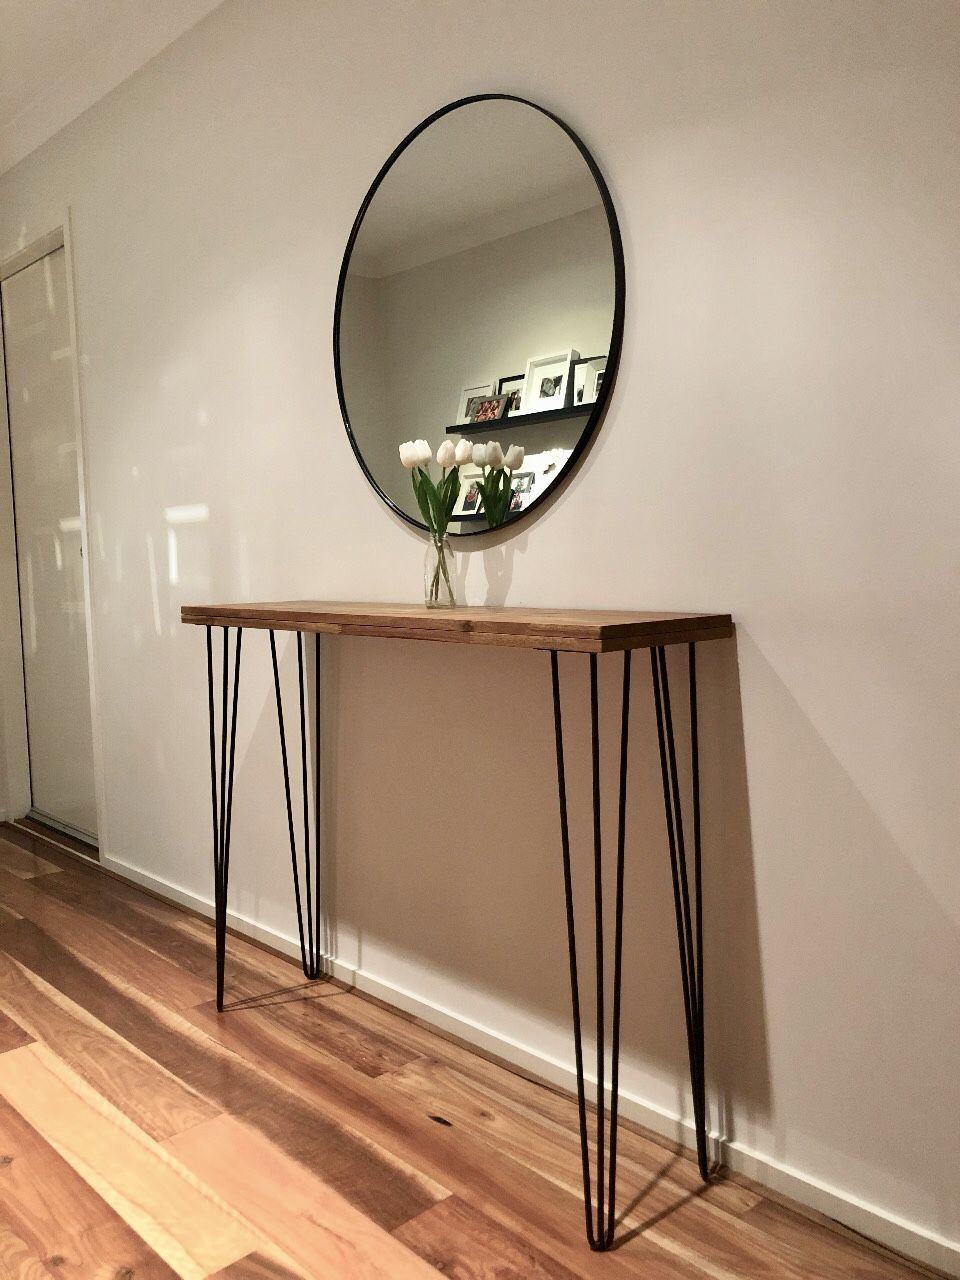 The Entry Table Ideas are tiny things we require to consider for room decor espe…